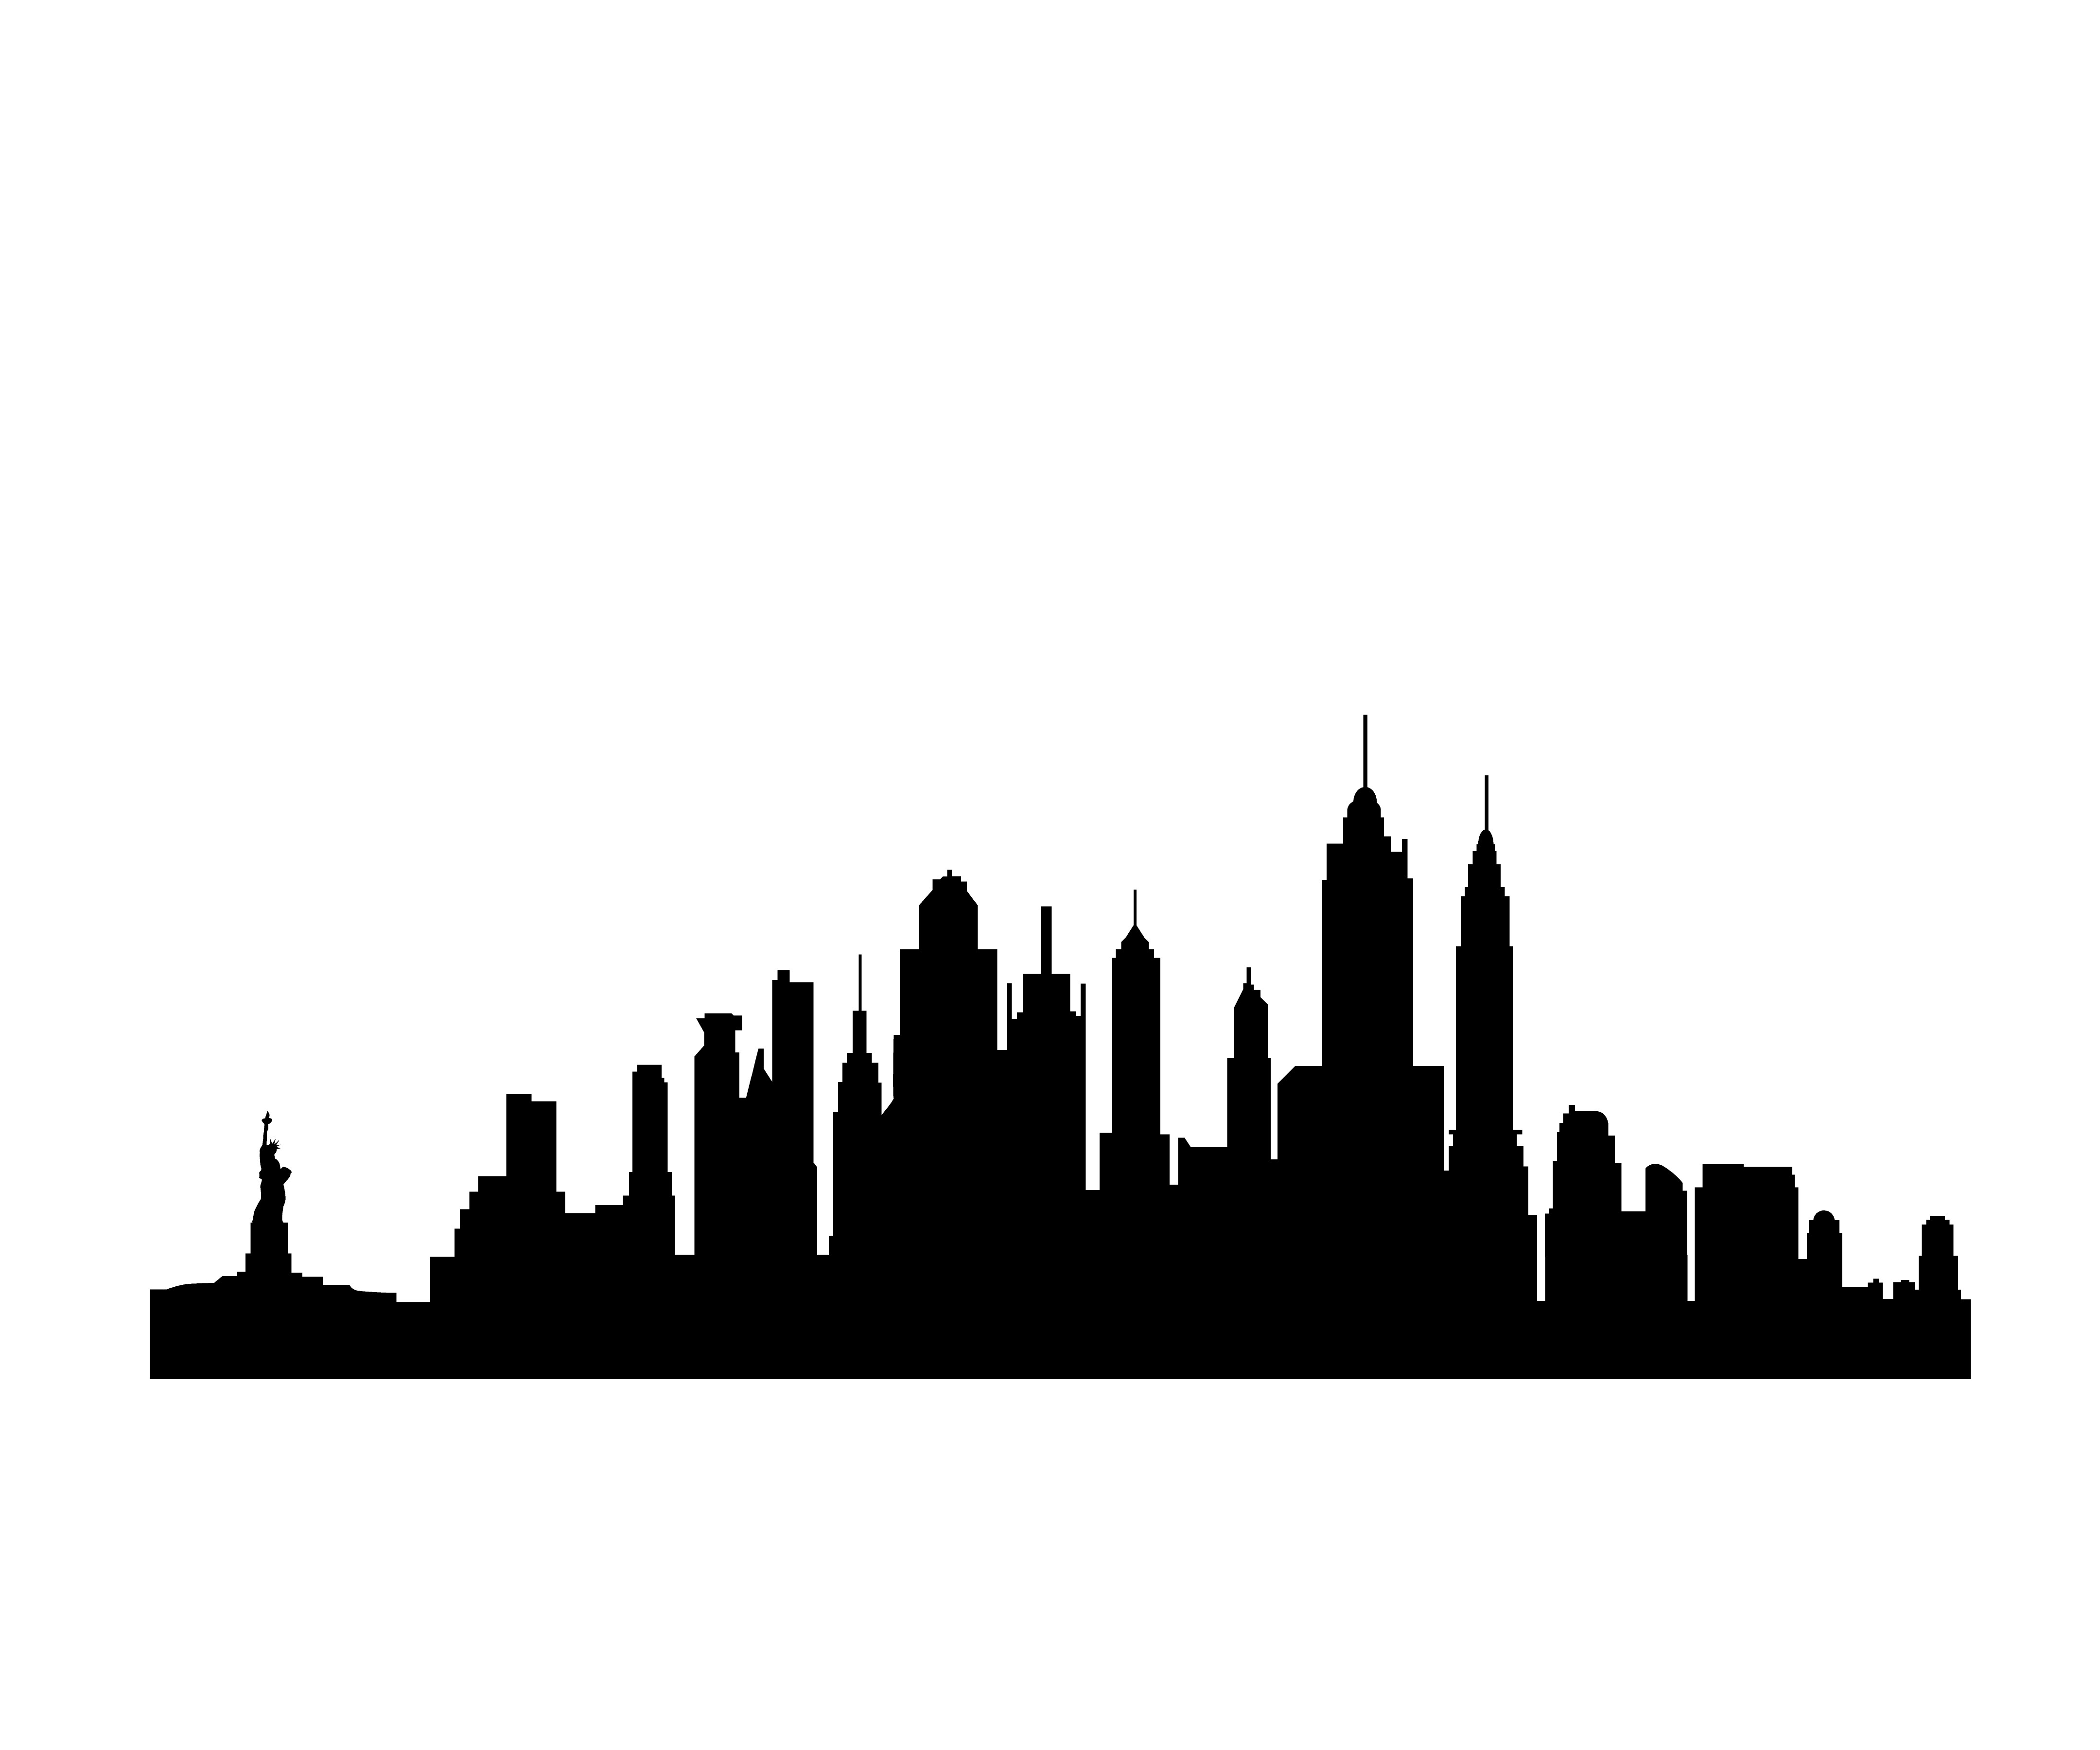 New York Skyline Silhouette Clipart free image.